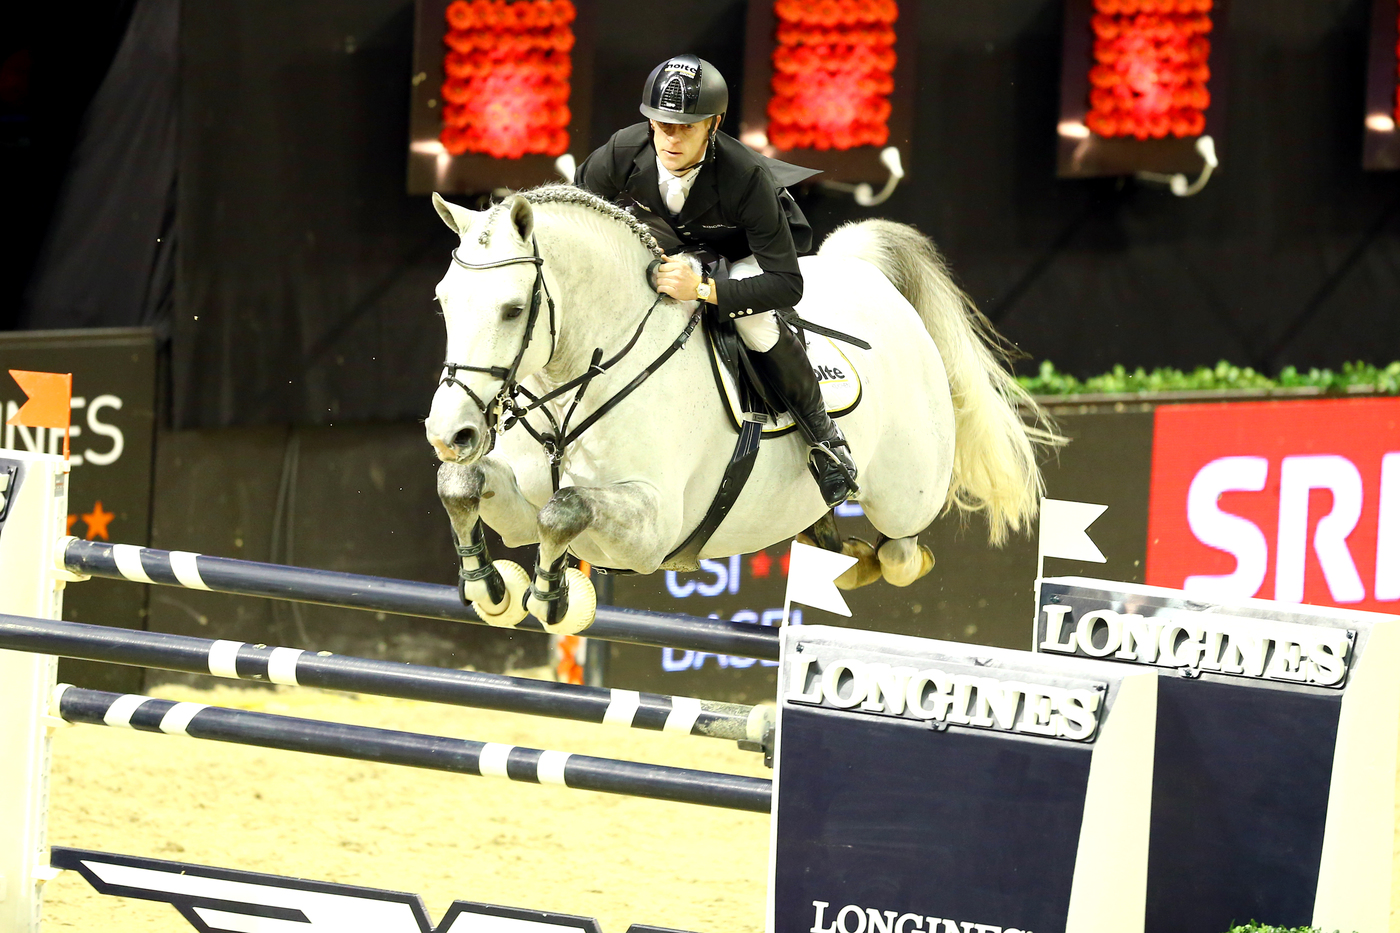 Longines Show Jumping Event: Rolf-Göran Bengtsson on Casall ASK wins the Longines Grand Prix at Longines CSI Basel 3